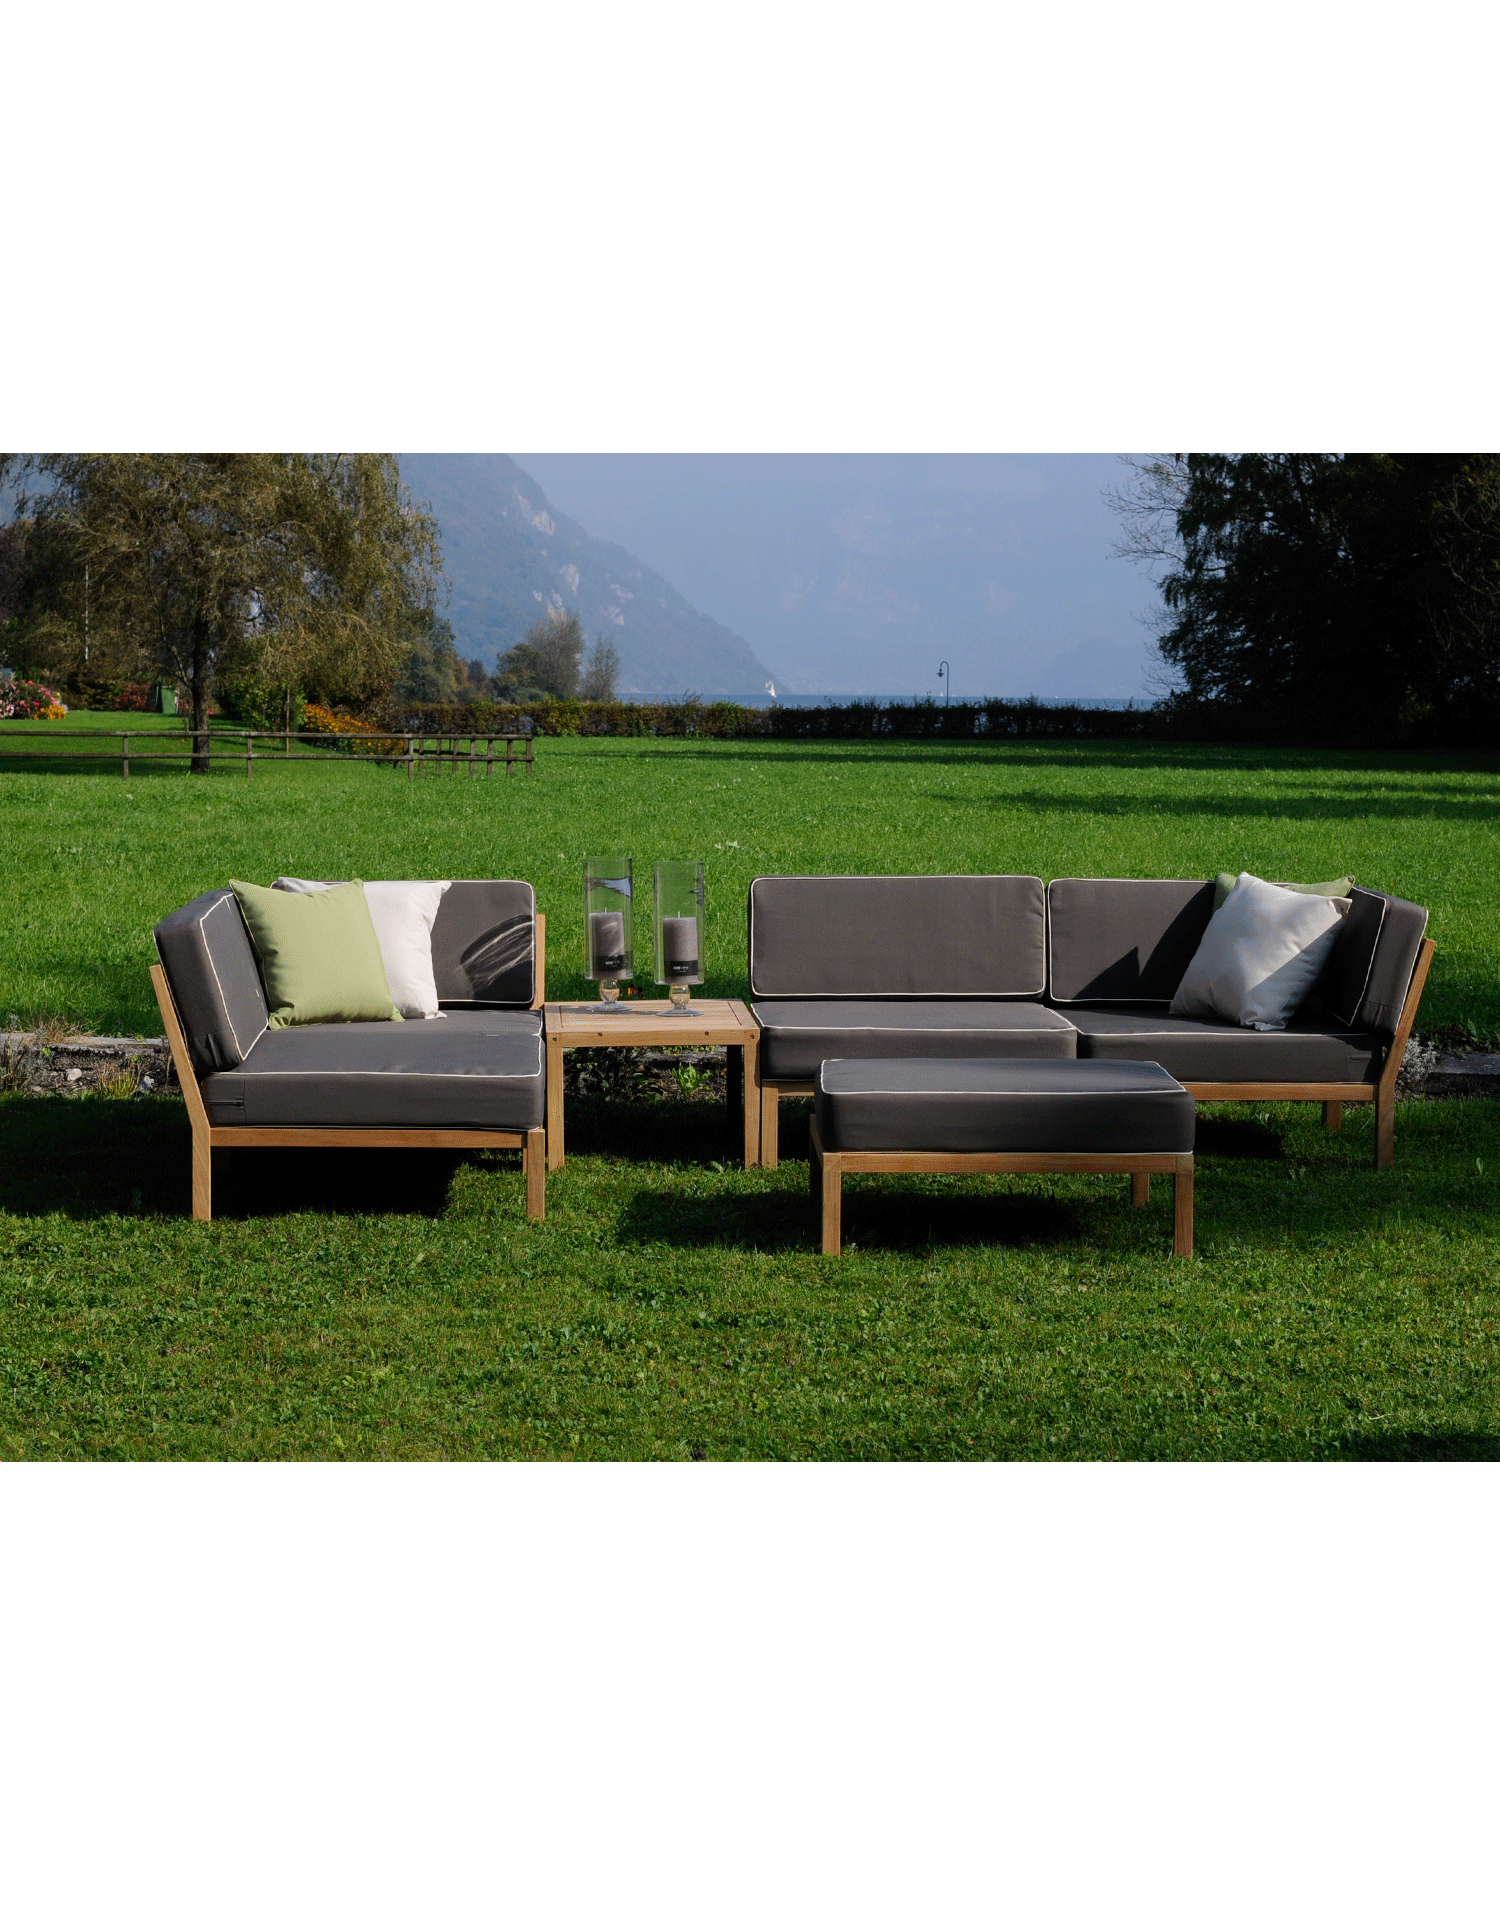 gartenm bel schweiz lounge kollektion ideen garten design als inspiration mit beispielen von. Black Bedroom Furniture Sets. Home Design Ideas